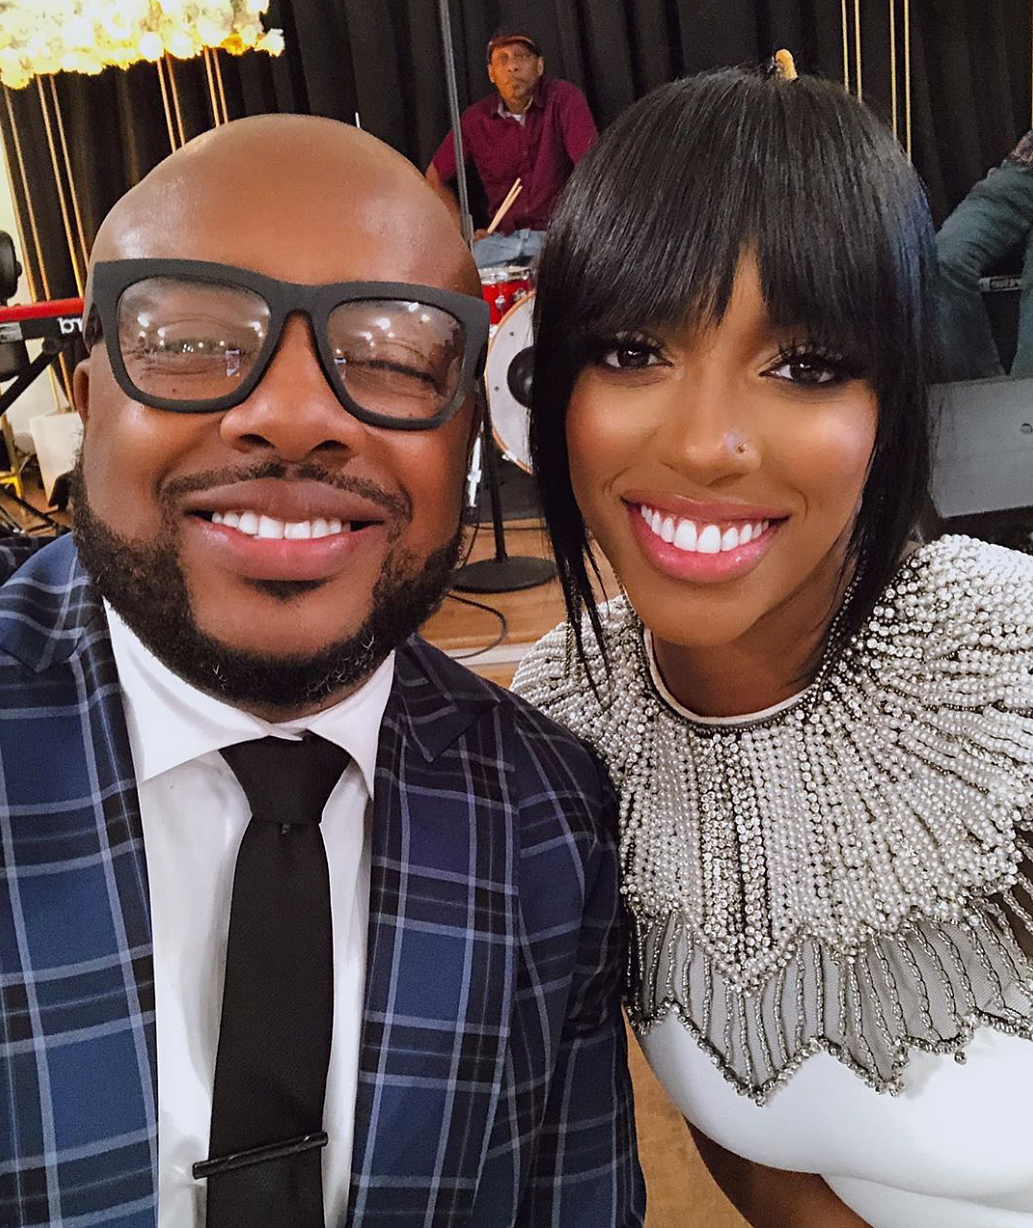 Porsha-Williams-and-Dennis-McKinley-rebuilding-relationship-post-cheating-scandal